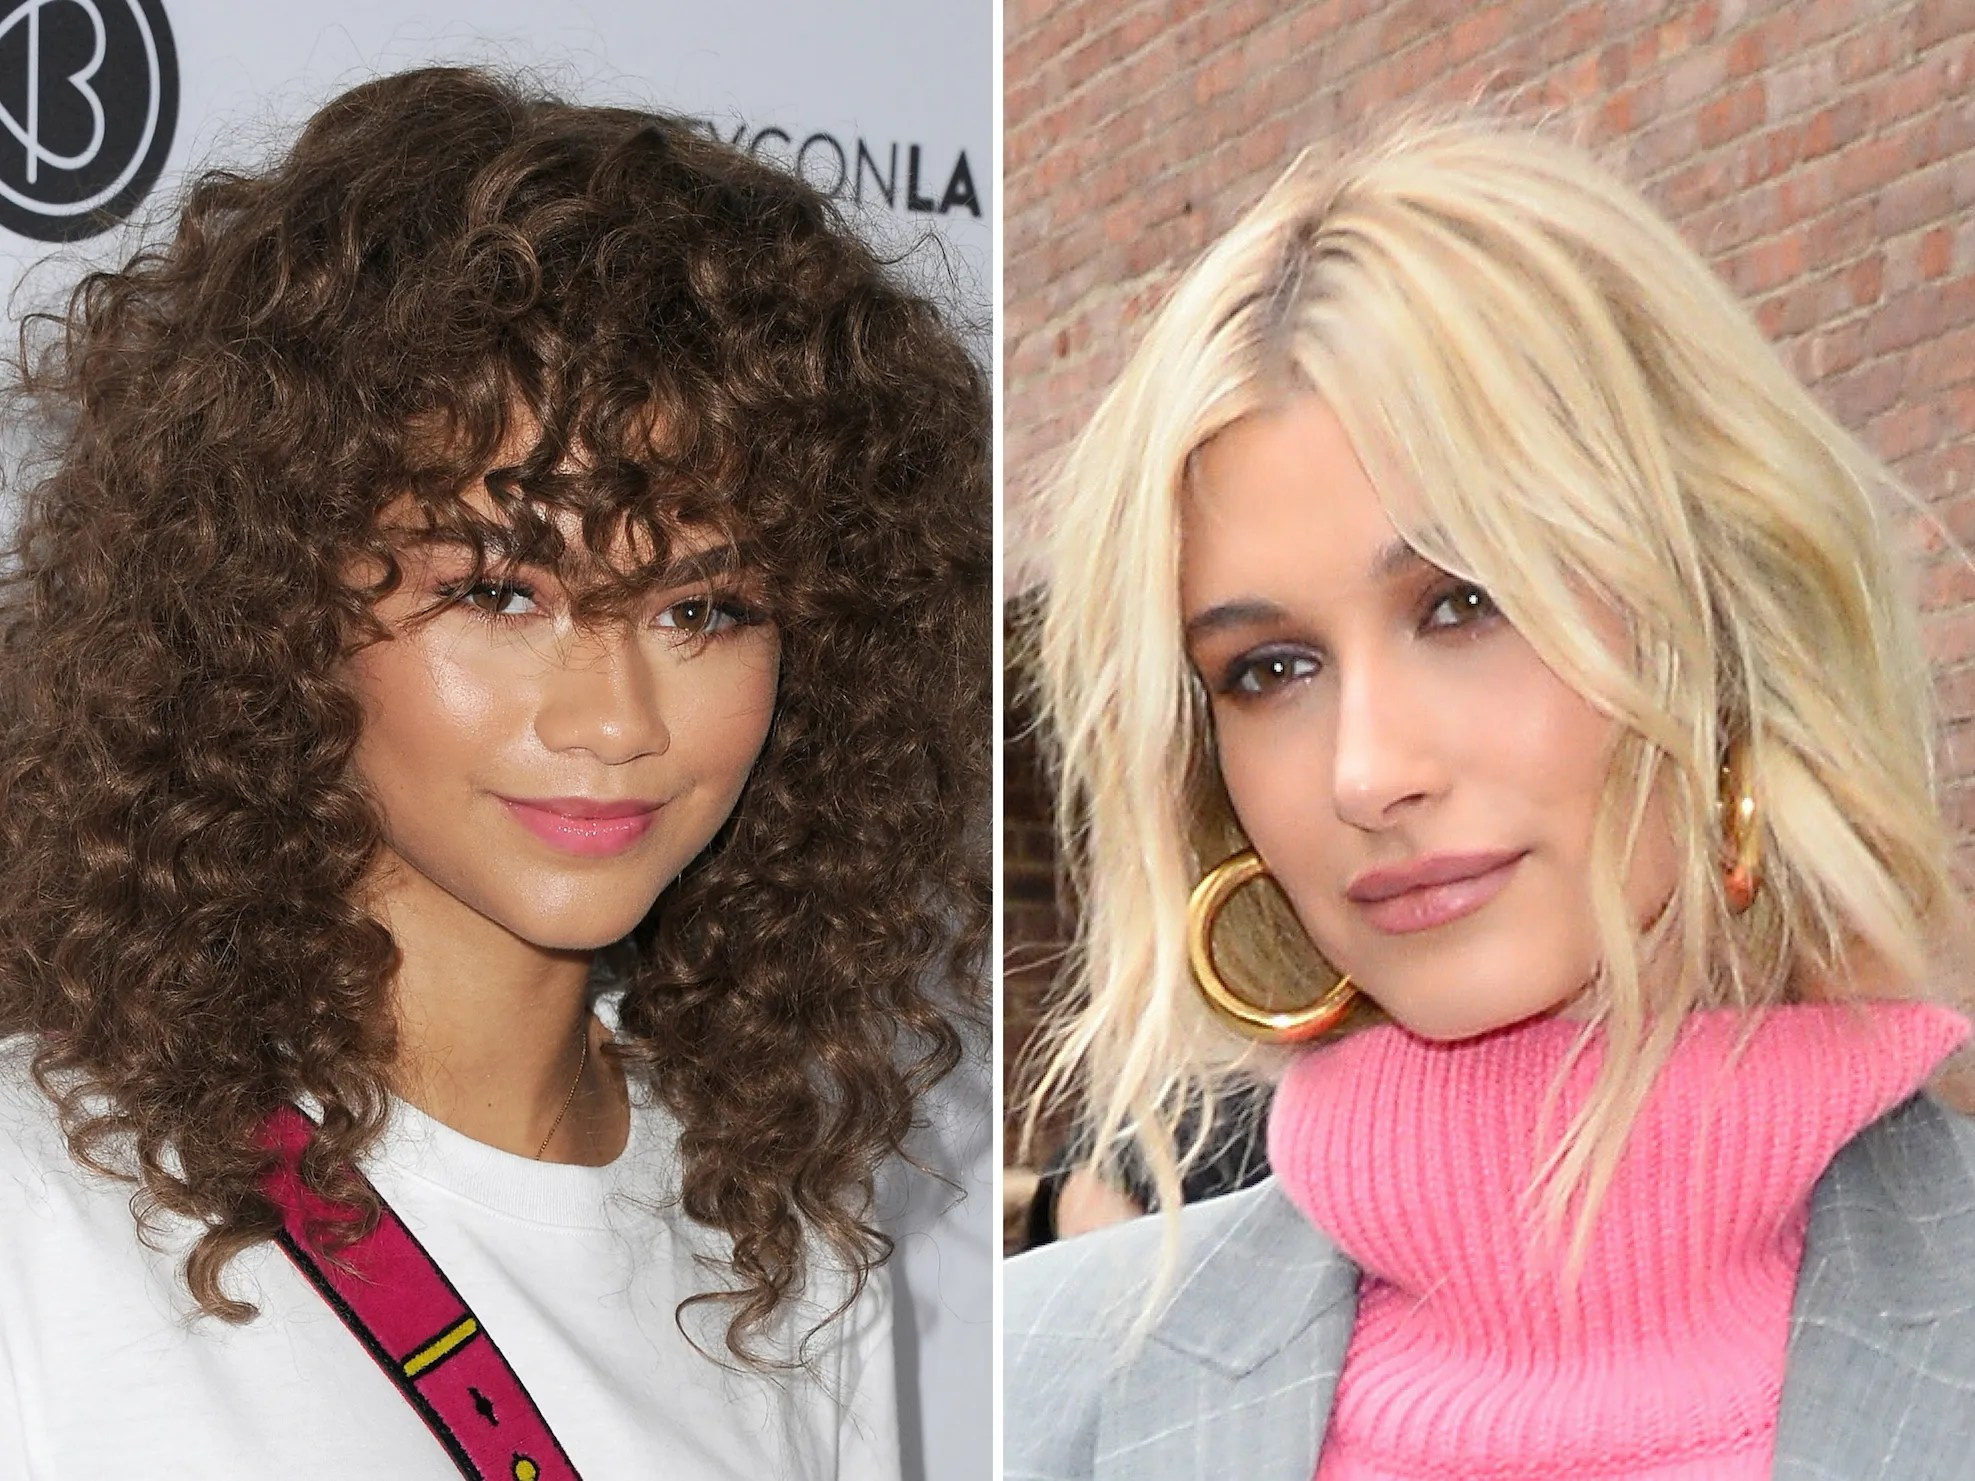 Haircuts Hairstyles 7 Best Haircut Trends For Spring 2019 According To Stylists Allure